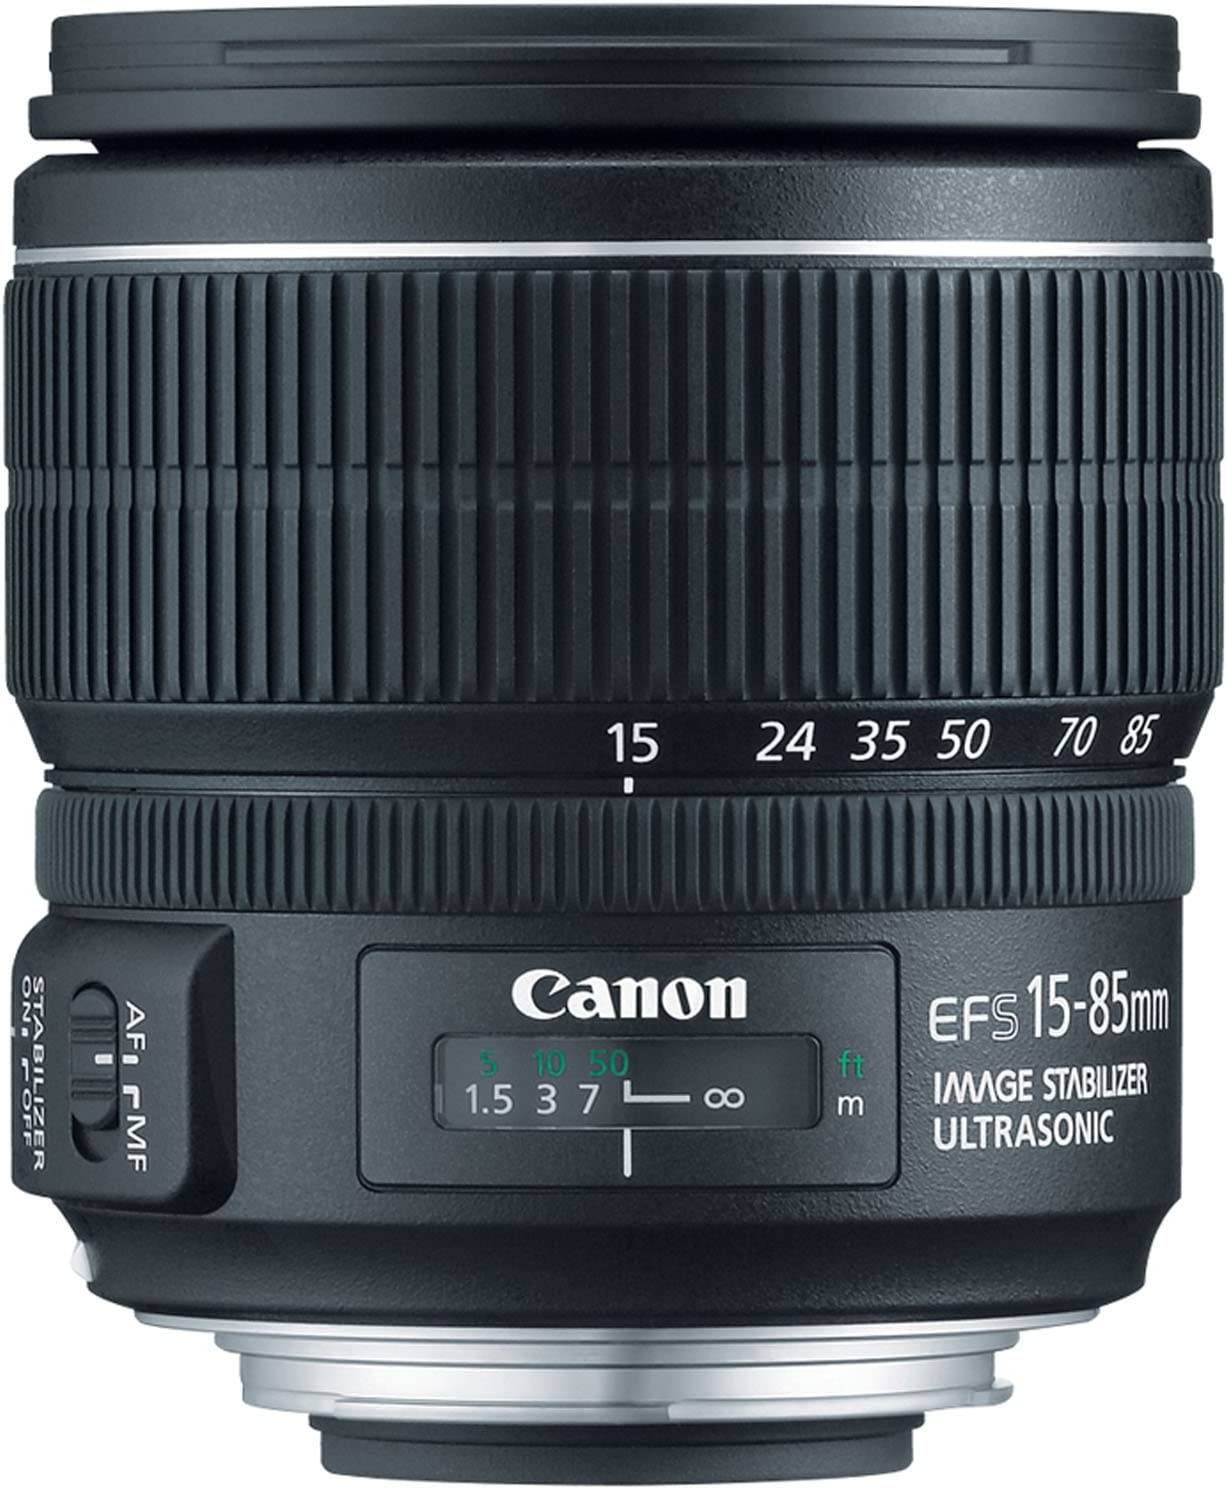 Canon EF-S 15-85mm f/3.5-5.6 IS USM UD : Best Lens for Car Photography